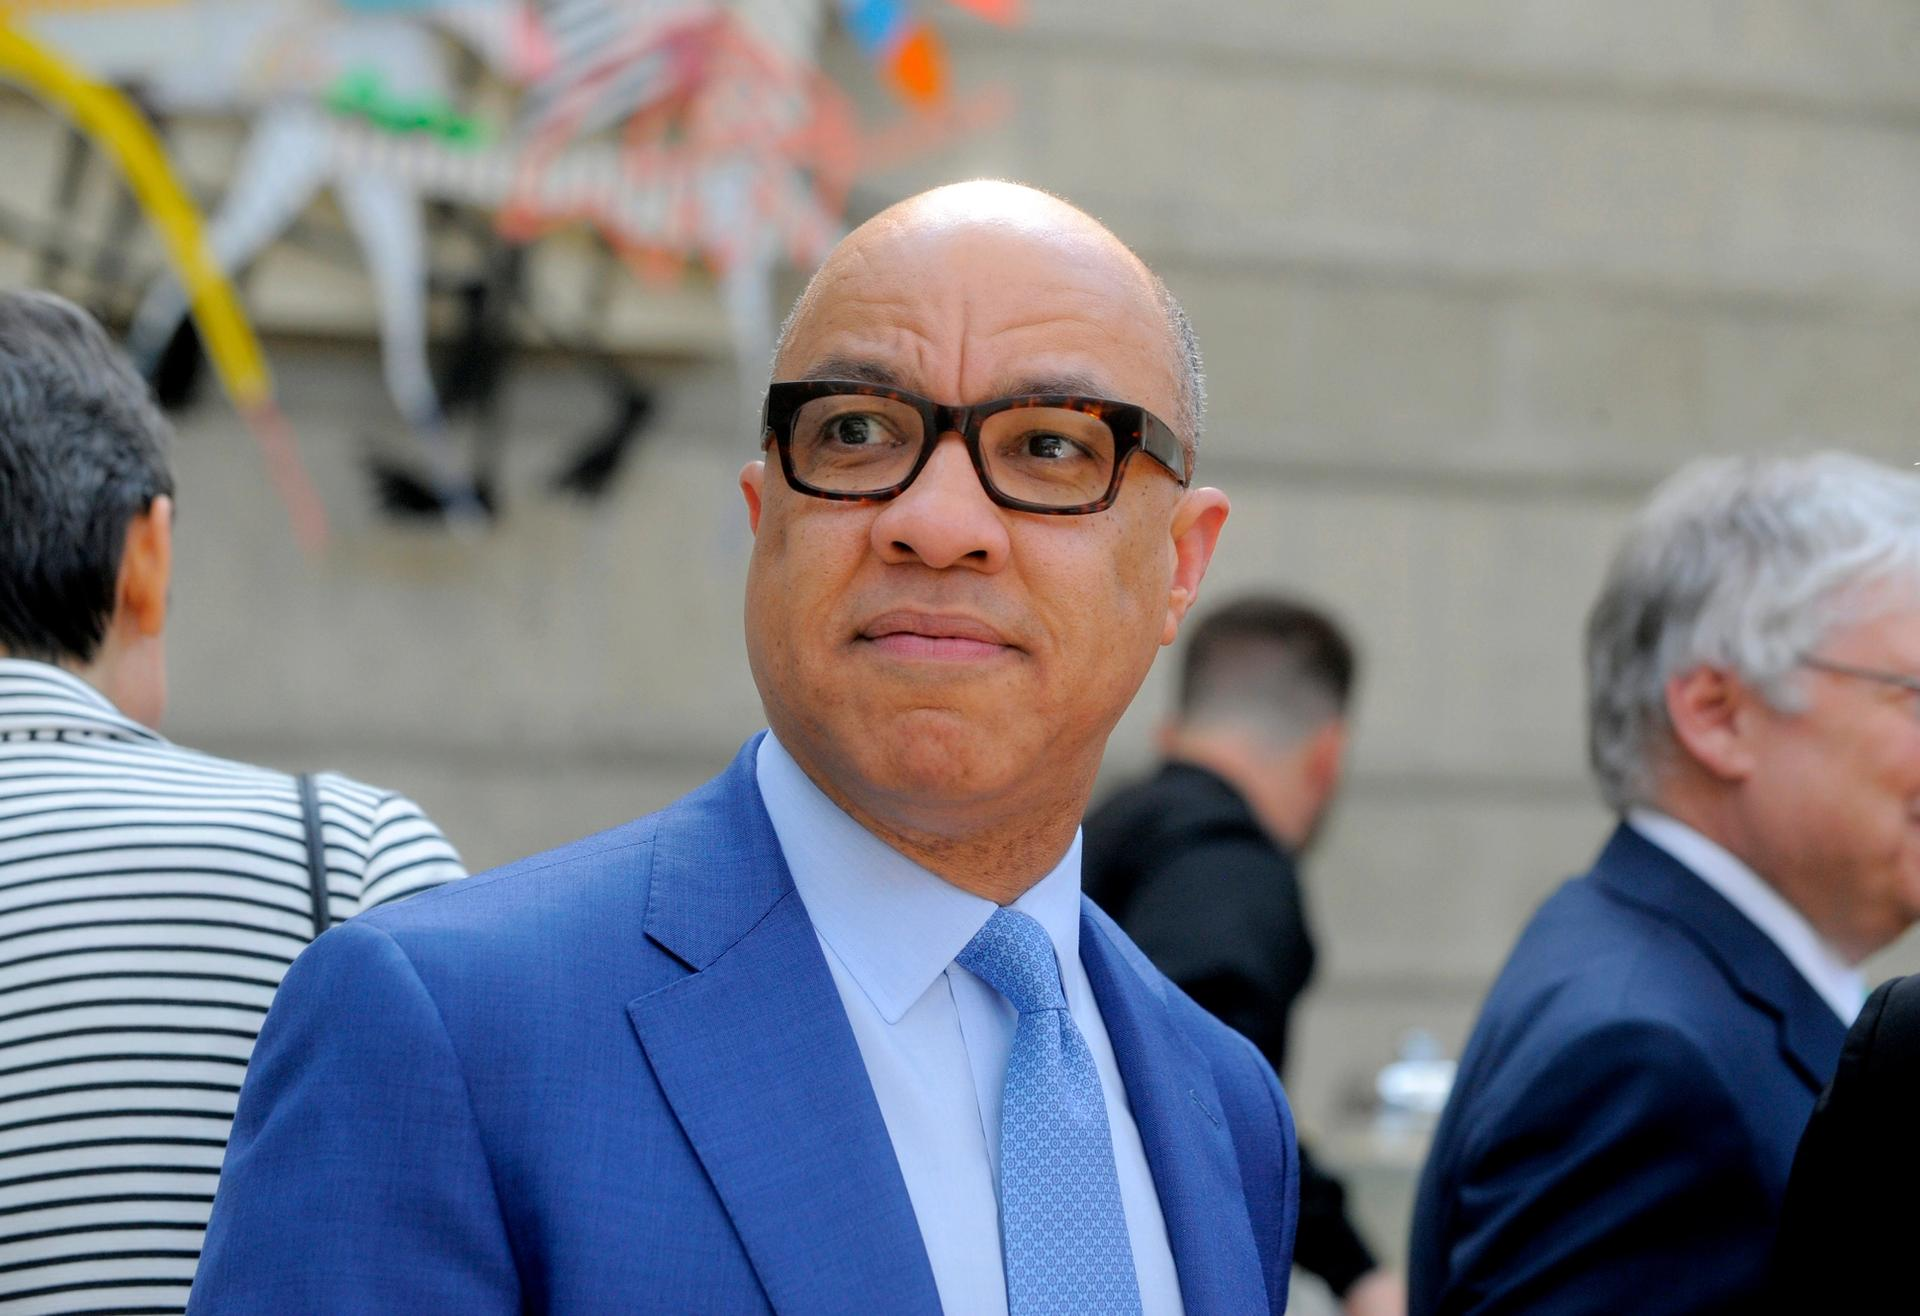 Ford Foundation President Darren Walker attends a reception at the Charles H. Wright Museum in Detroit Steve Perez/Detroit News via AP